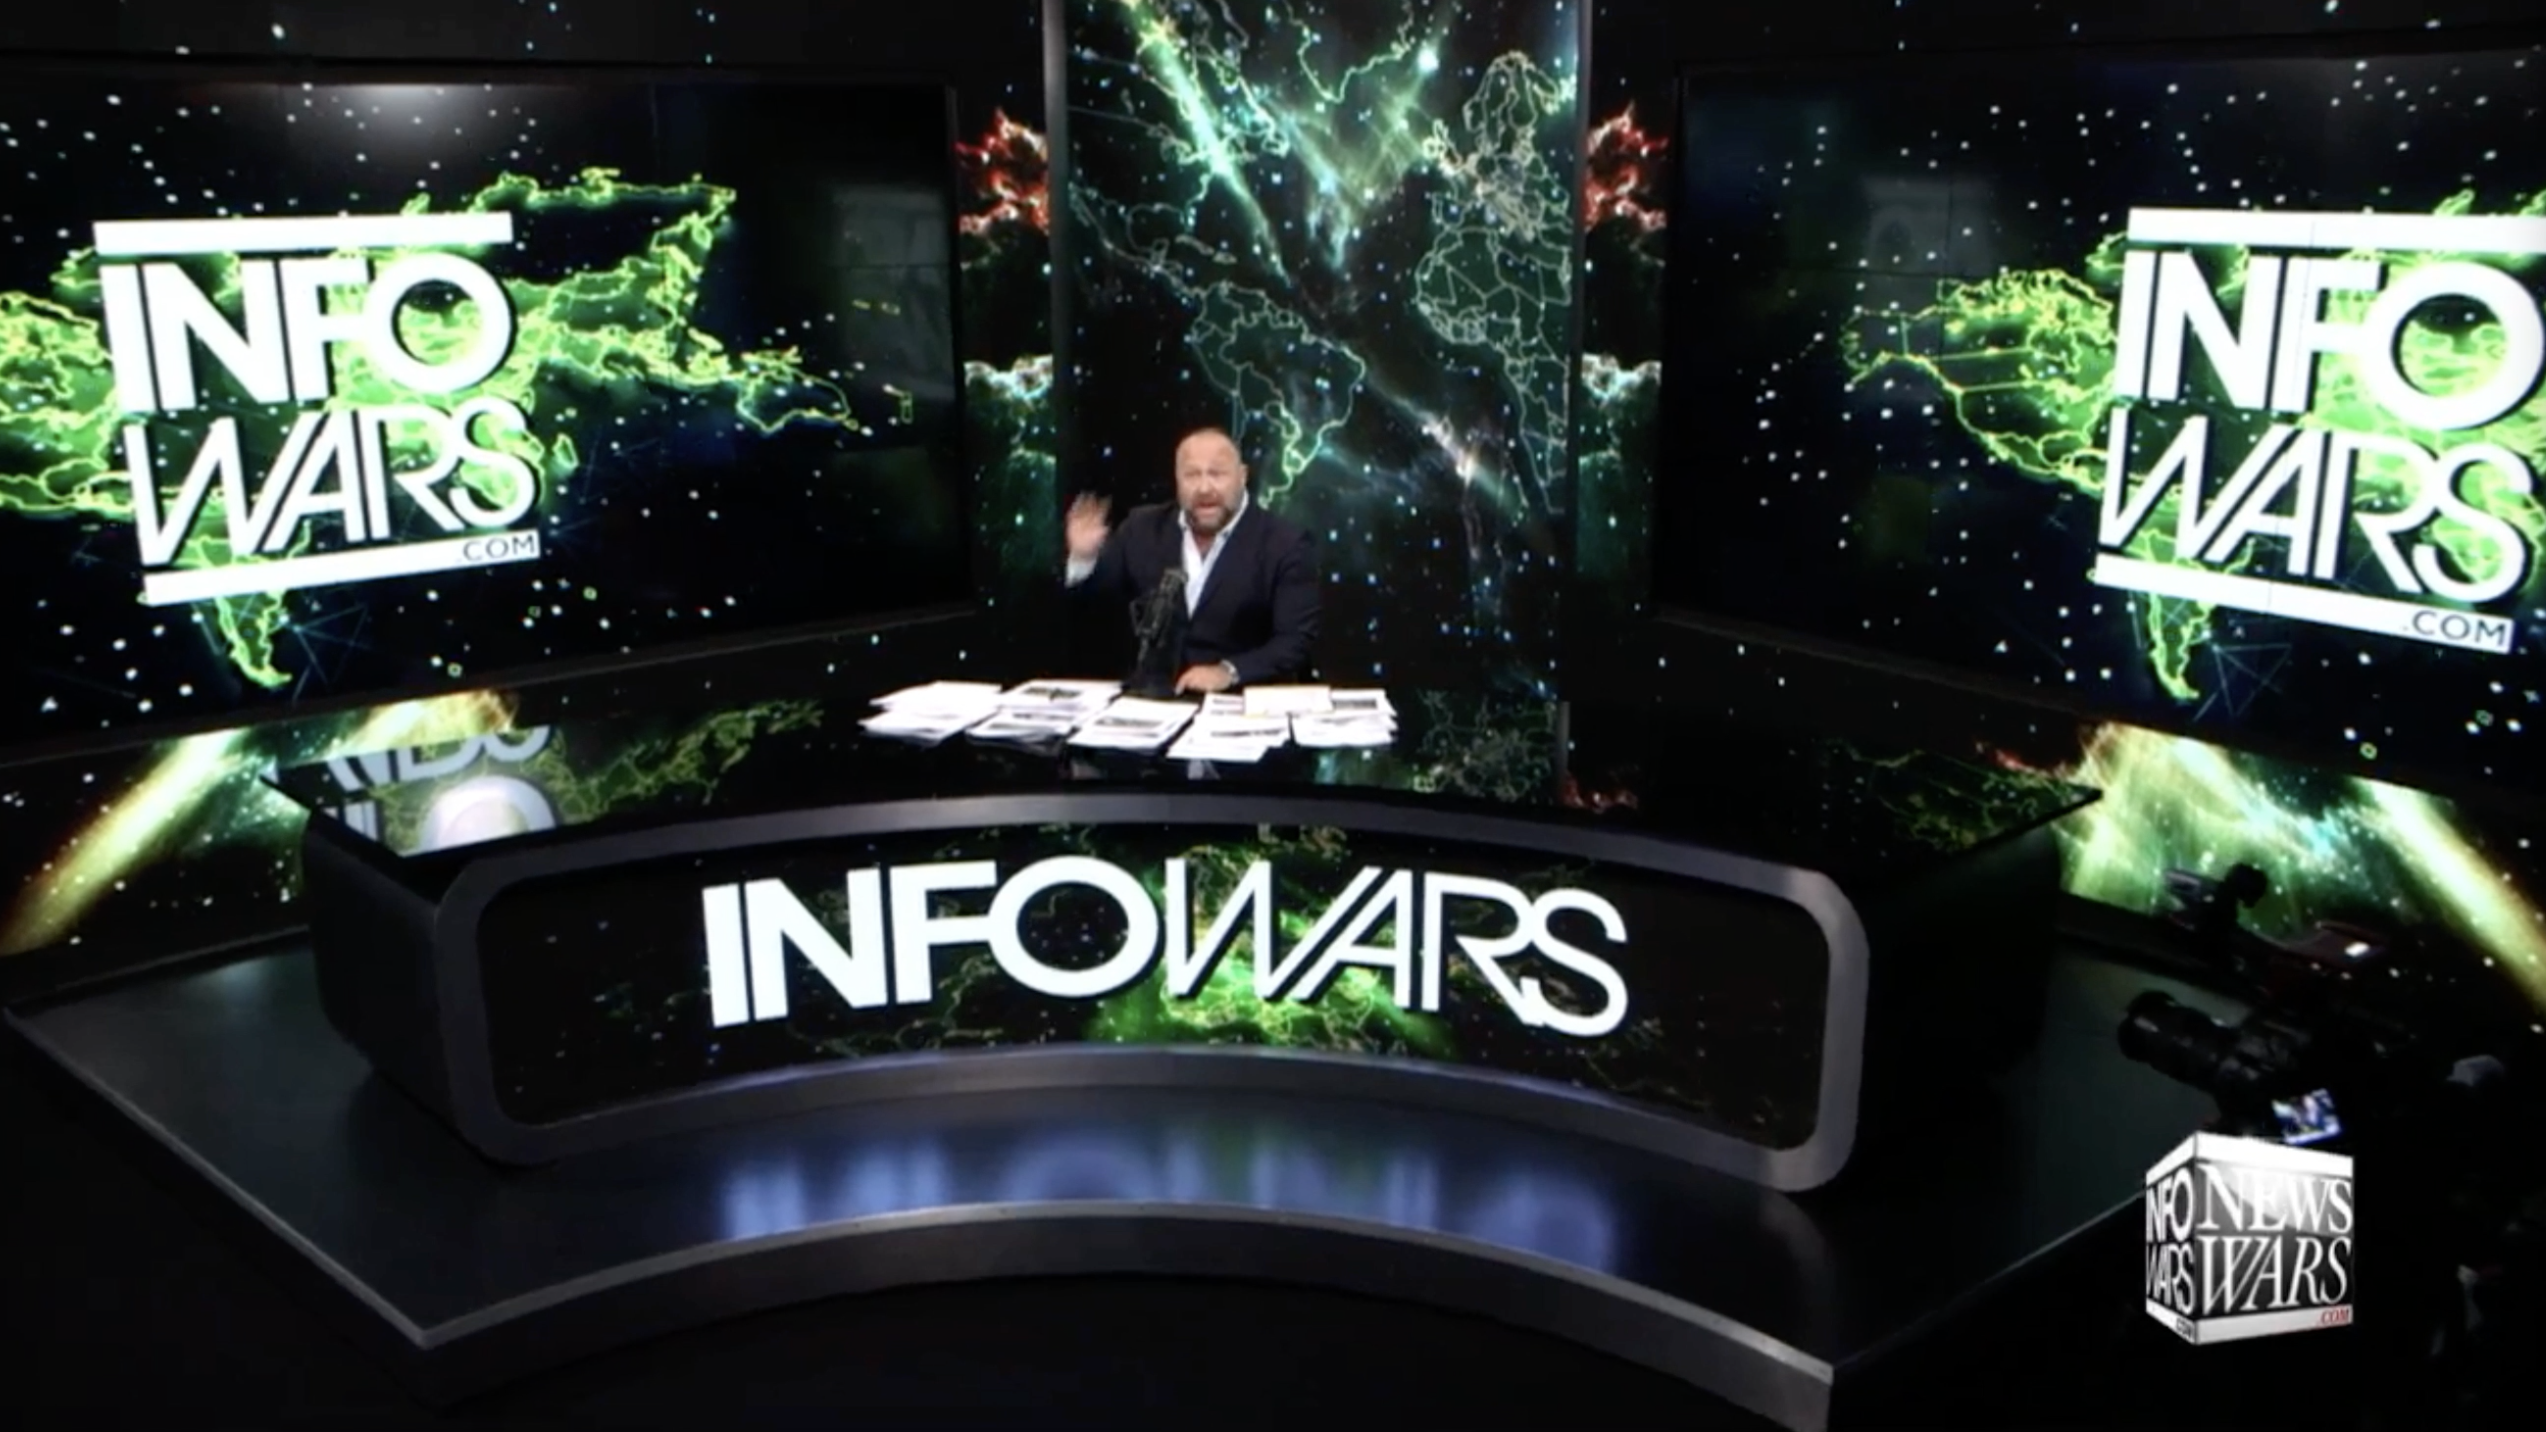 Alex Jones Infowars 4 2 2020